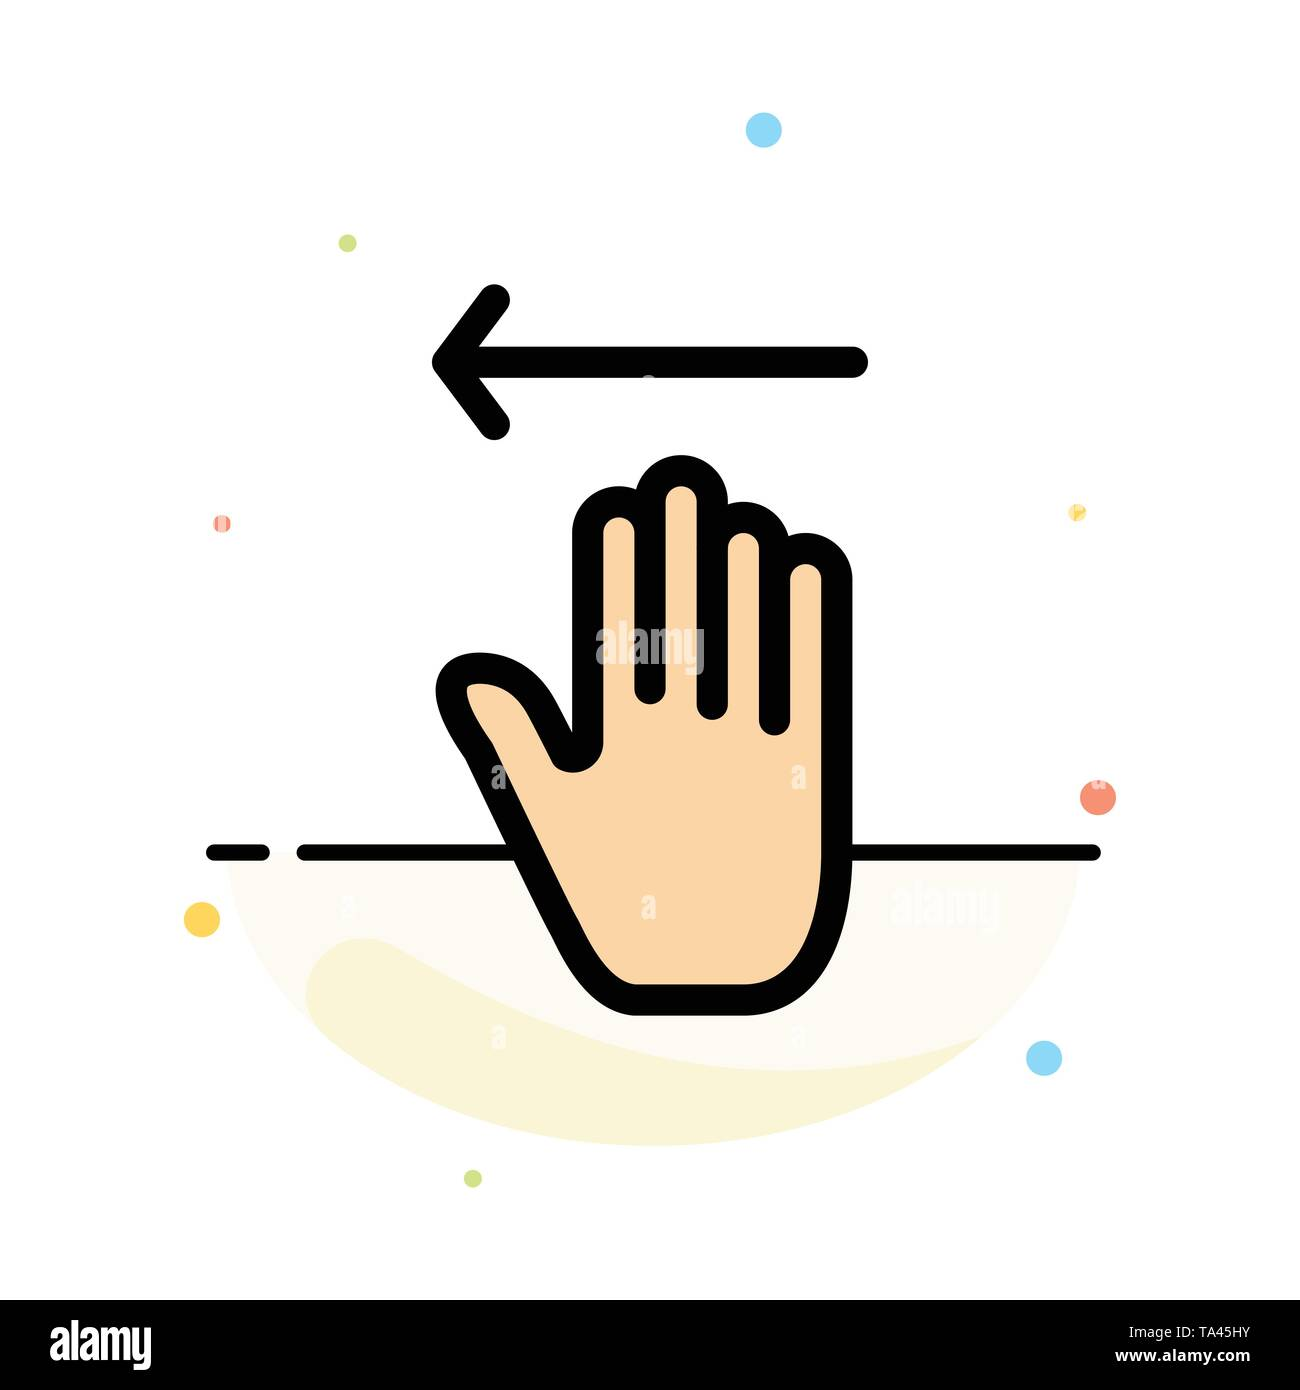 Hand, Arrow, Gestures, Left Abstract Flat Color Icon Template - Stock Image